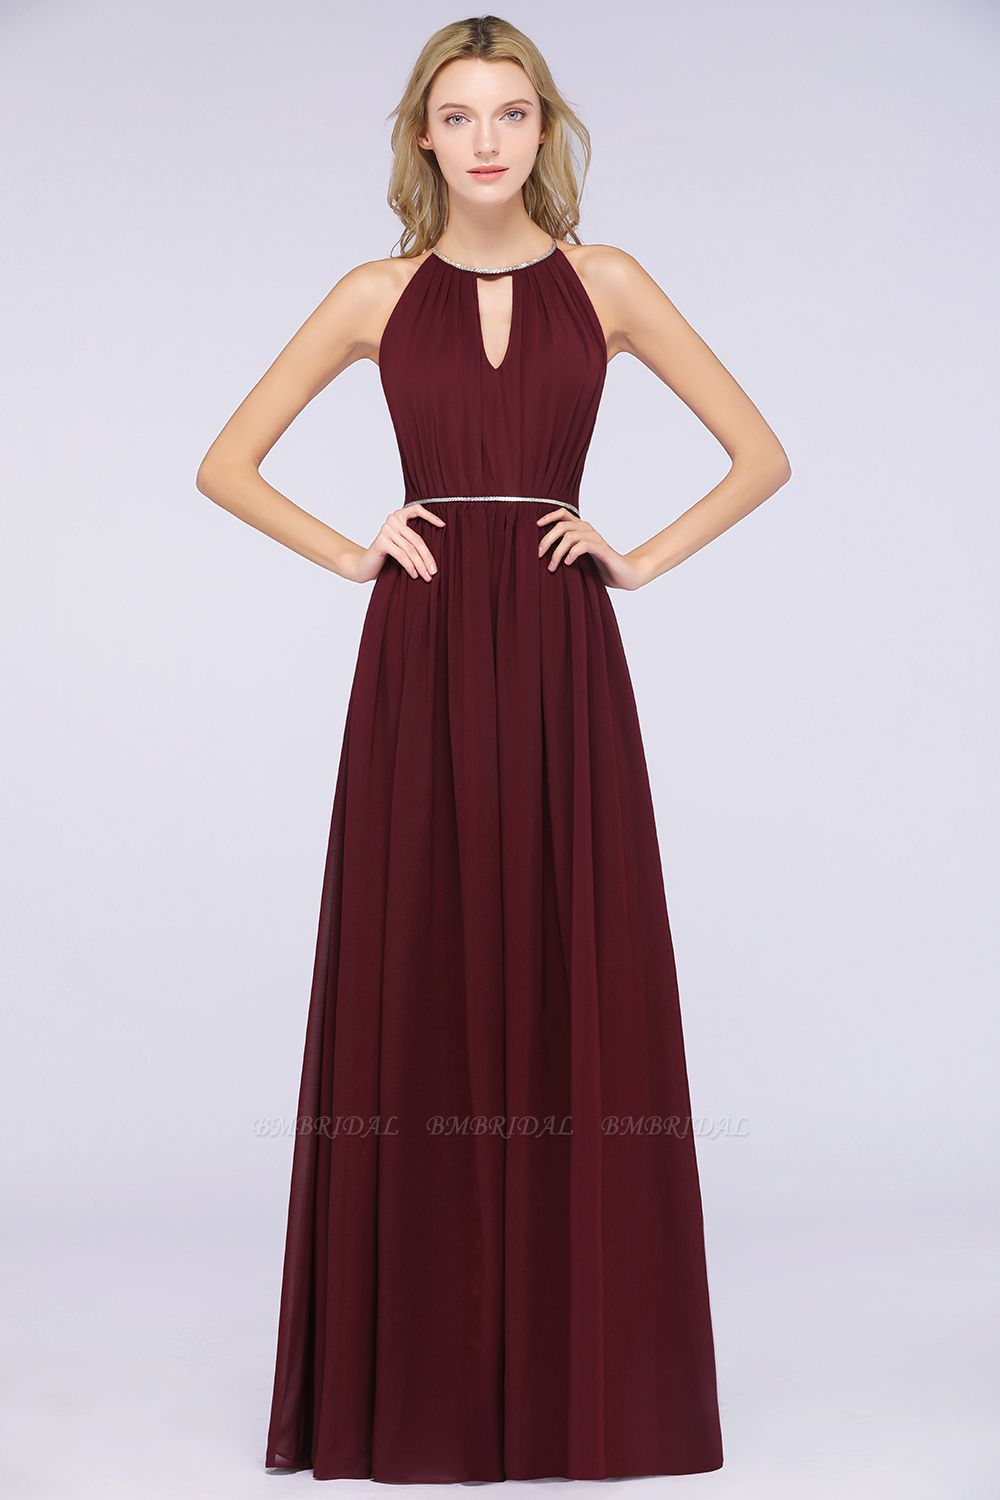 Chic Burgundy Halter Long Backless Bridesmaid Dress with Beadings